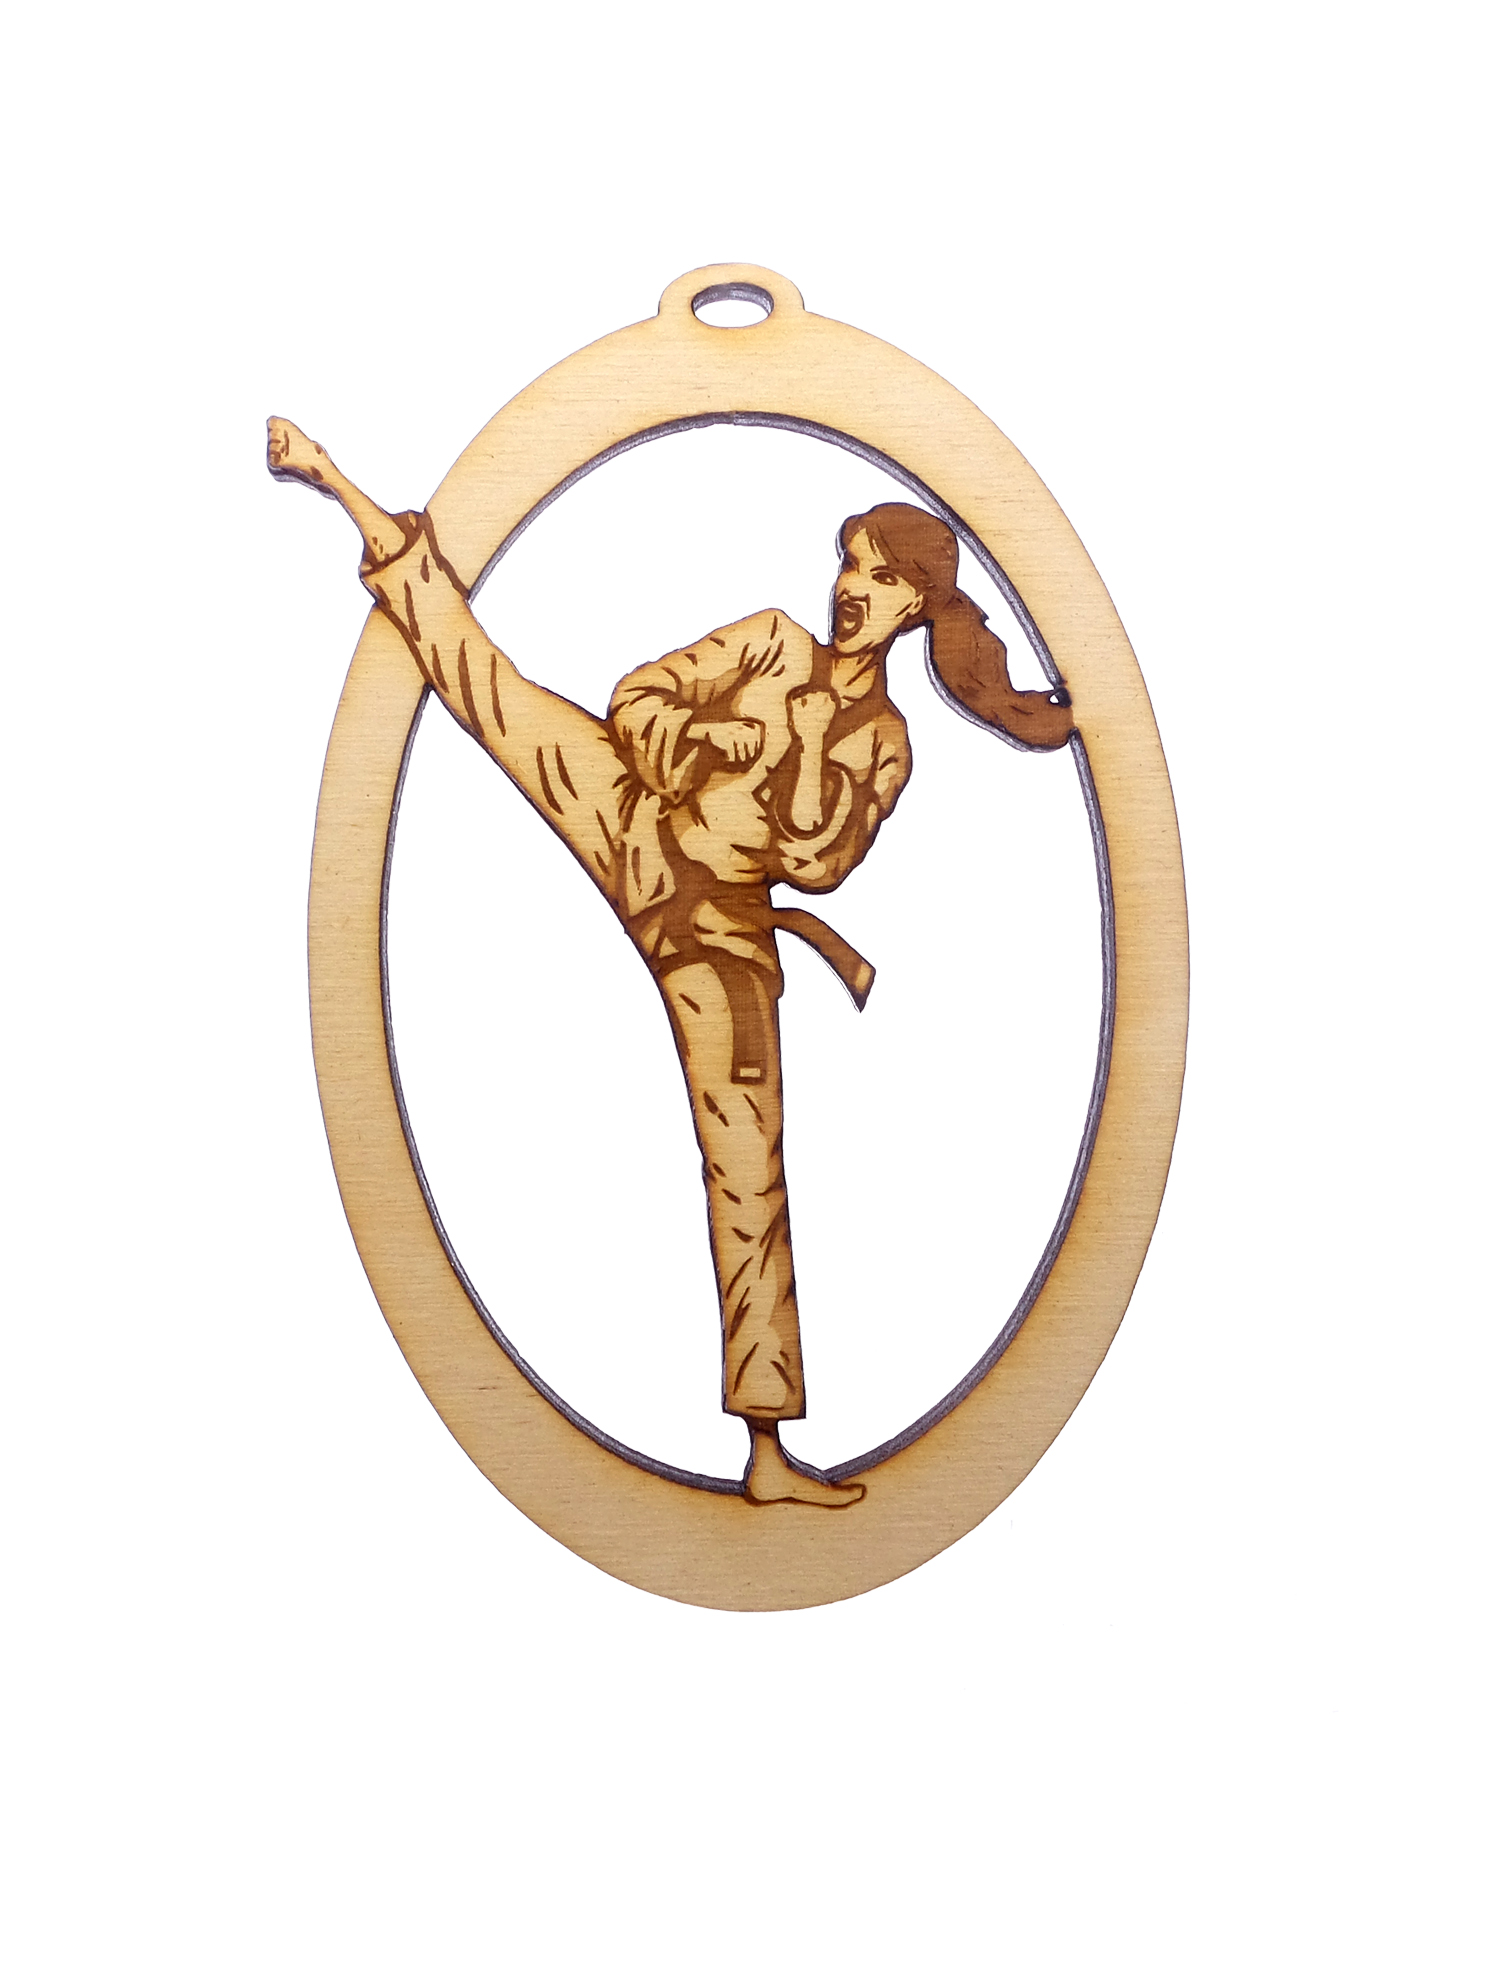 Karate ornament - Personalized Womens Karate Ornament